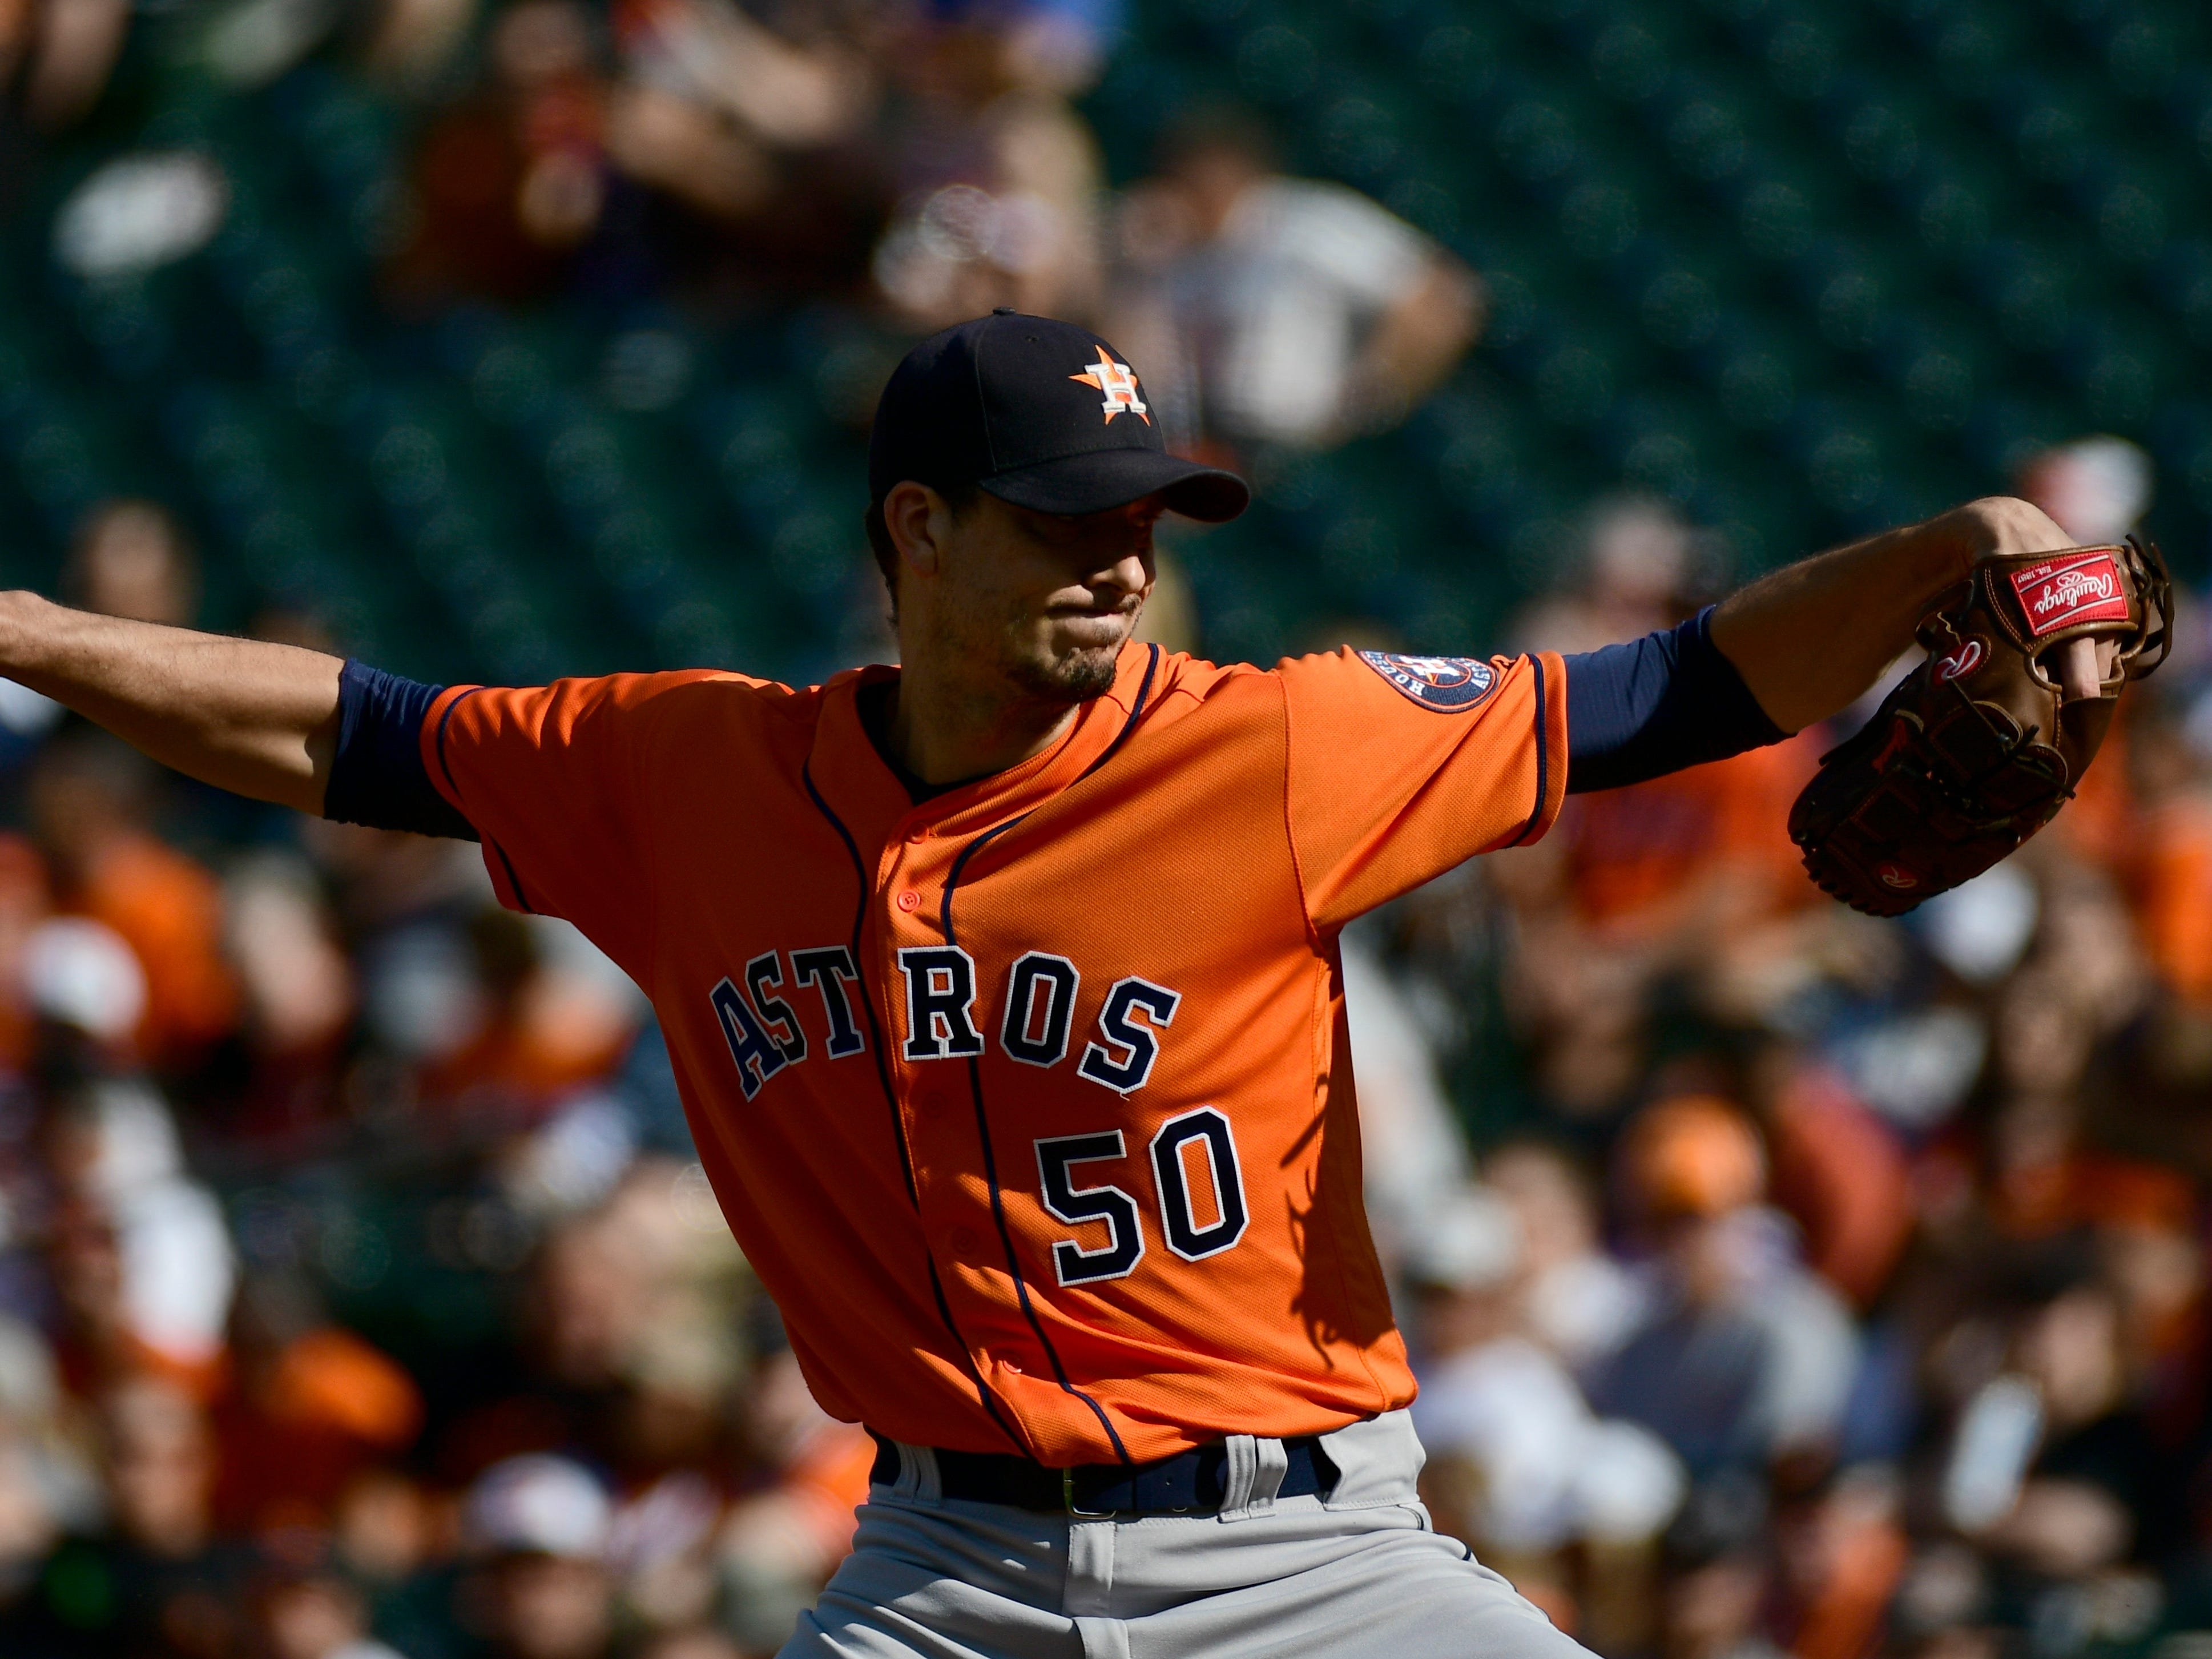 Charlie Morton (35, RHP, Astros) – signed with Rays, 2 years/$30 million